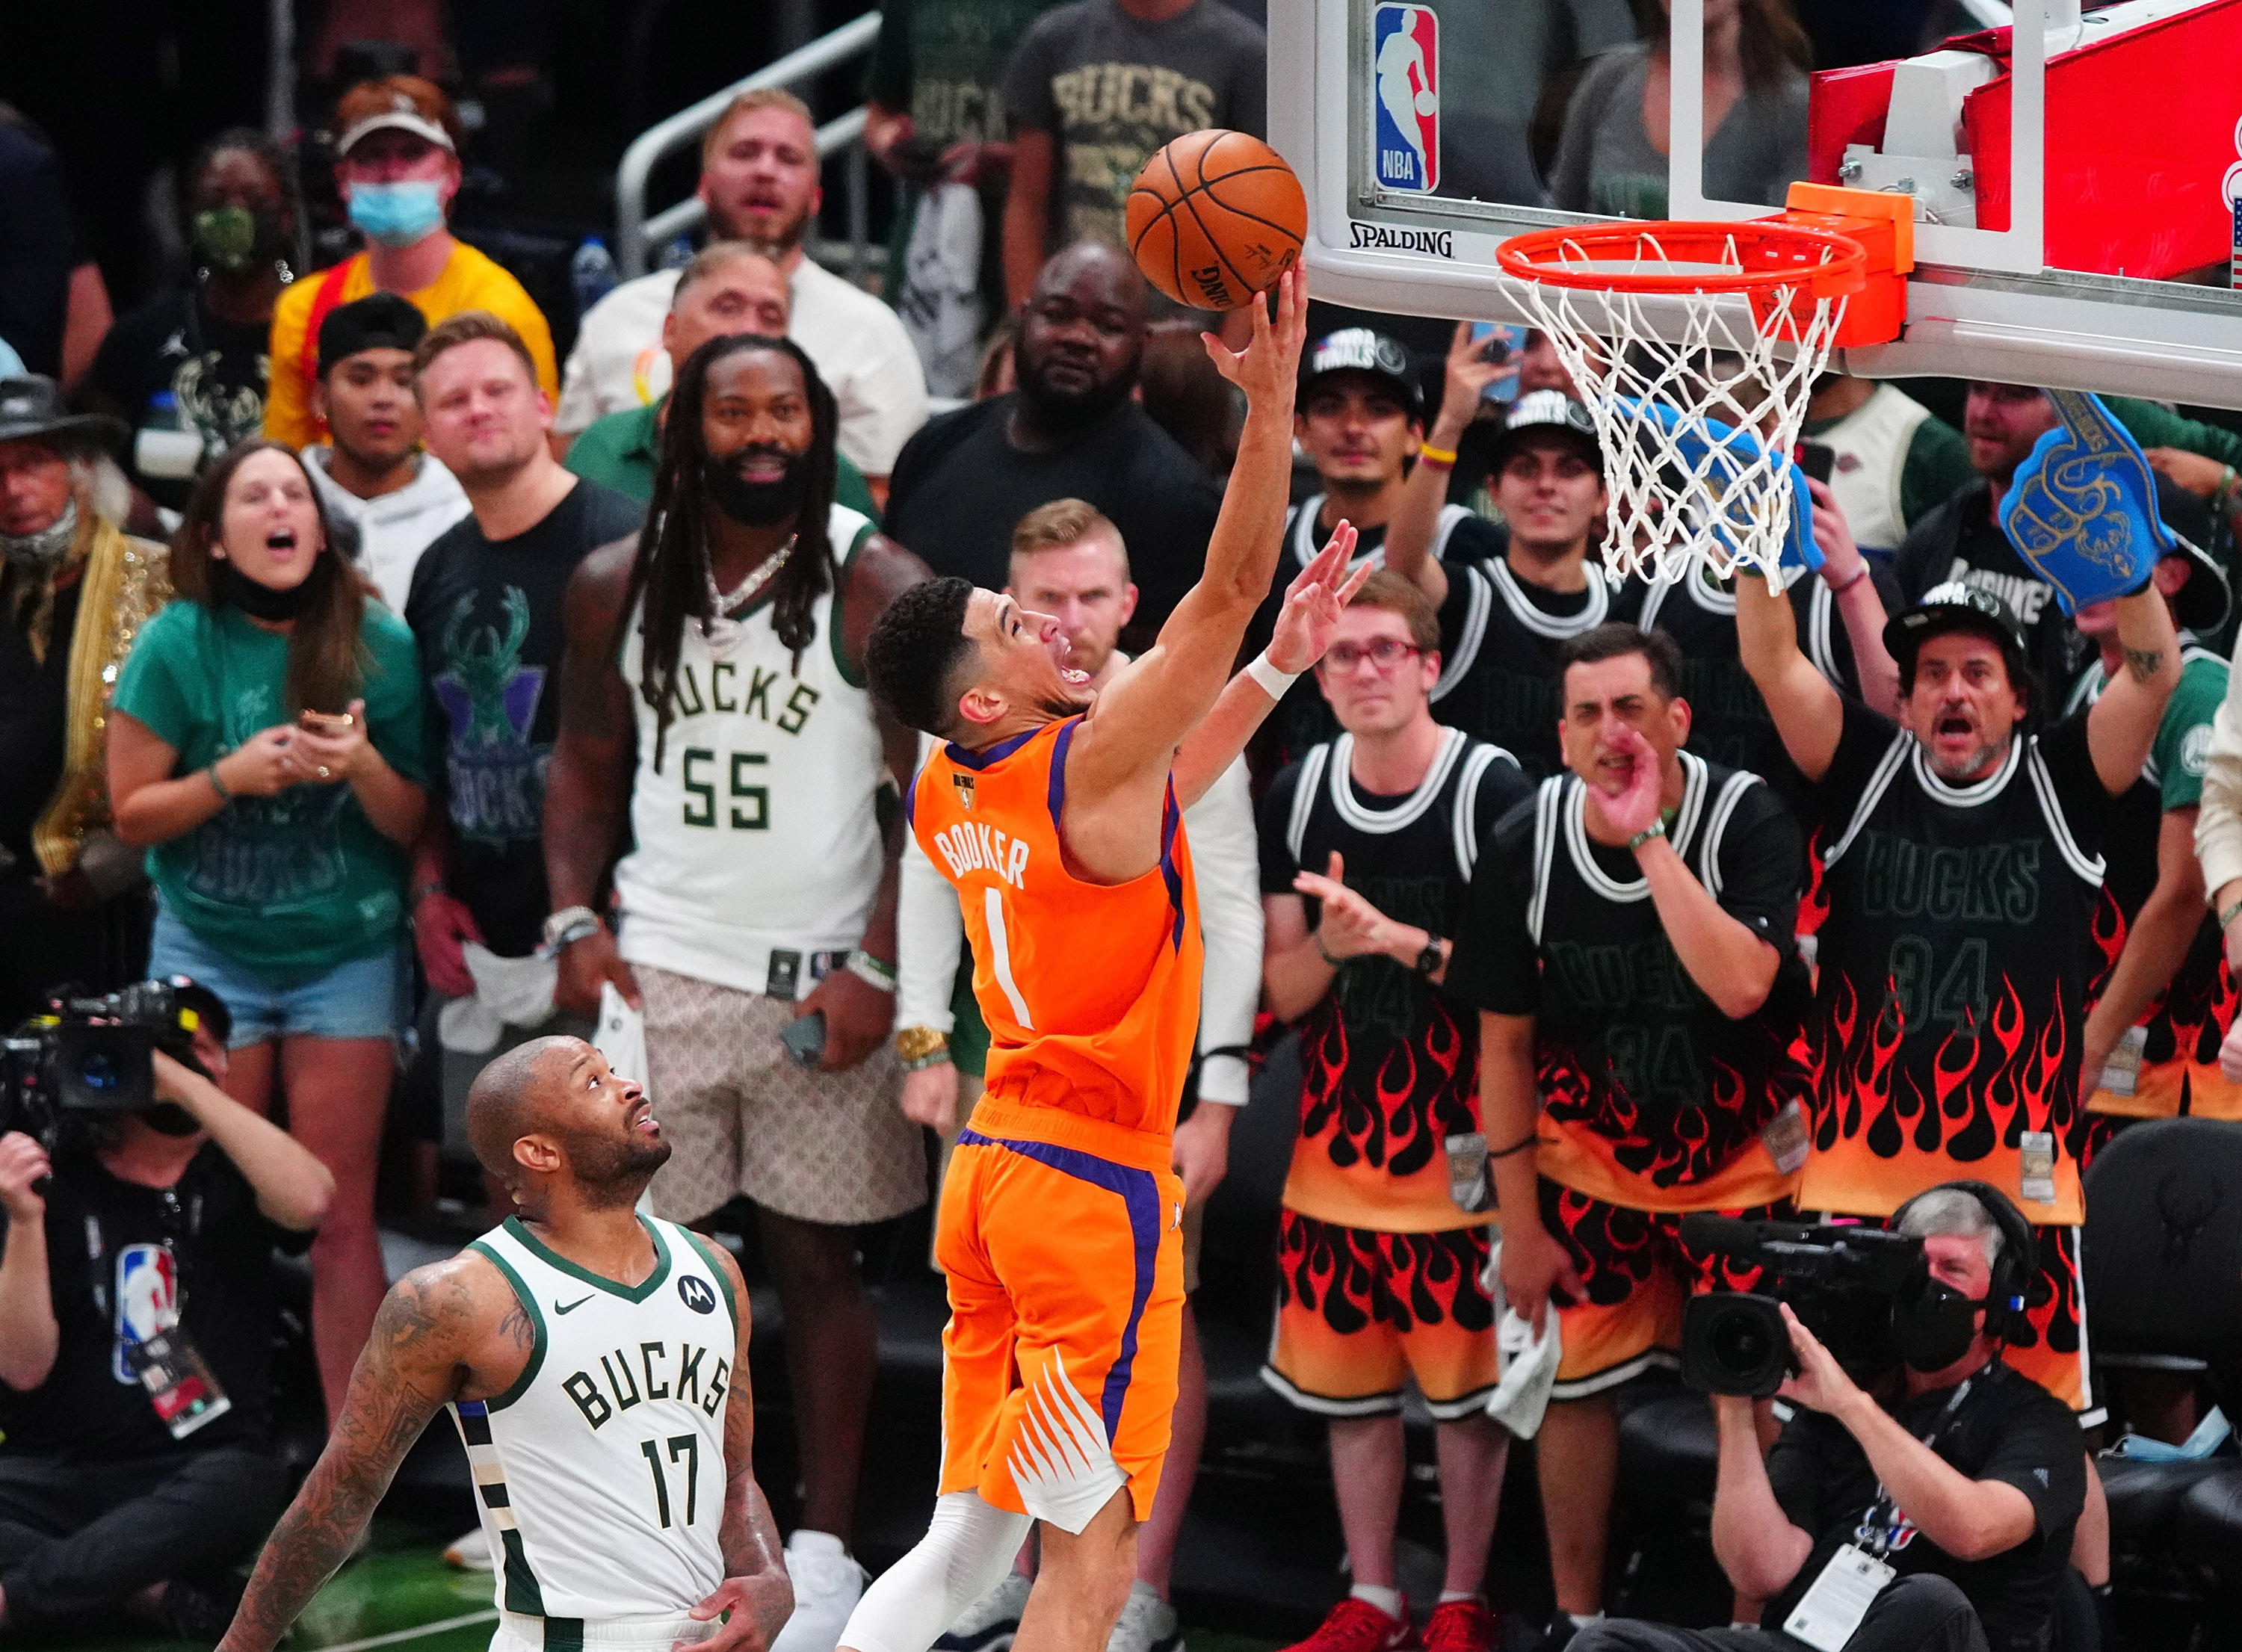 Jul 14, 2021; Milwaukee, Wisconsin, USA; Phoenix Suns guard Devin Booker (1) shoots in front of Milwaukee Bucks forward P.J. Tucker (17) during the fourth quarter in game four of the 2021 NBA Finals at Fiserv Forum. Mandatory Credit: Mark J. Rebilas-USA TODAY Sports